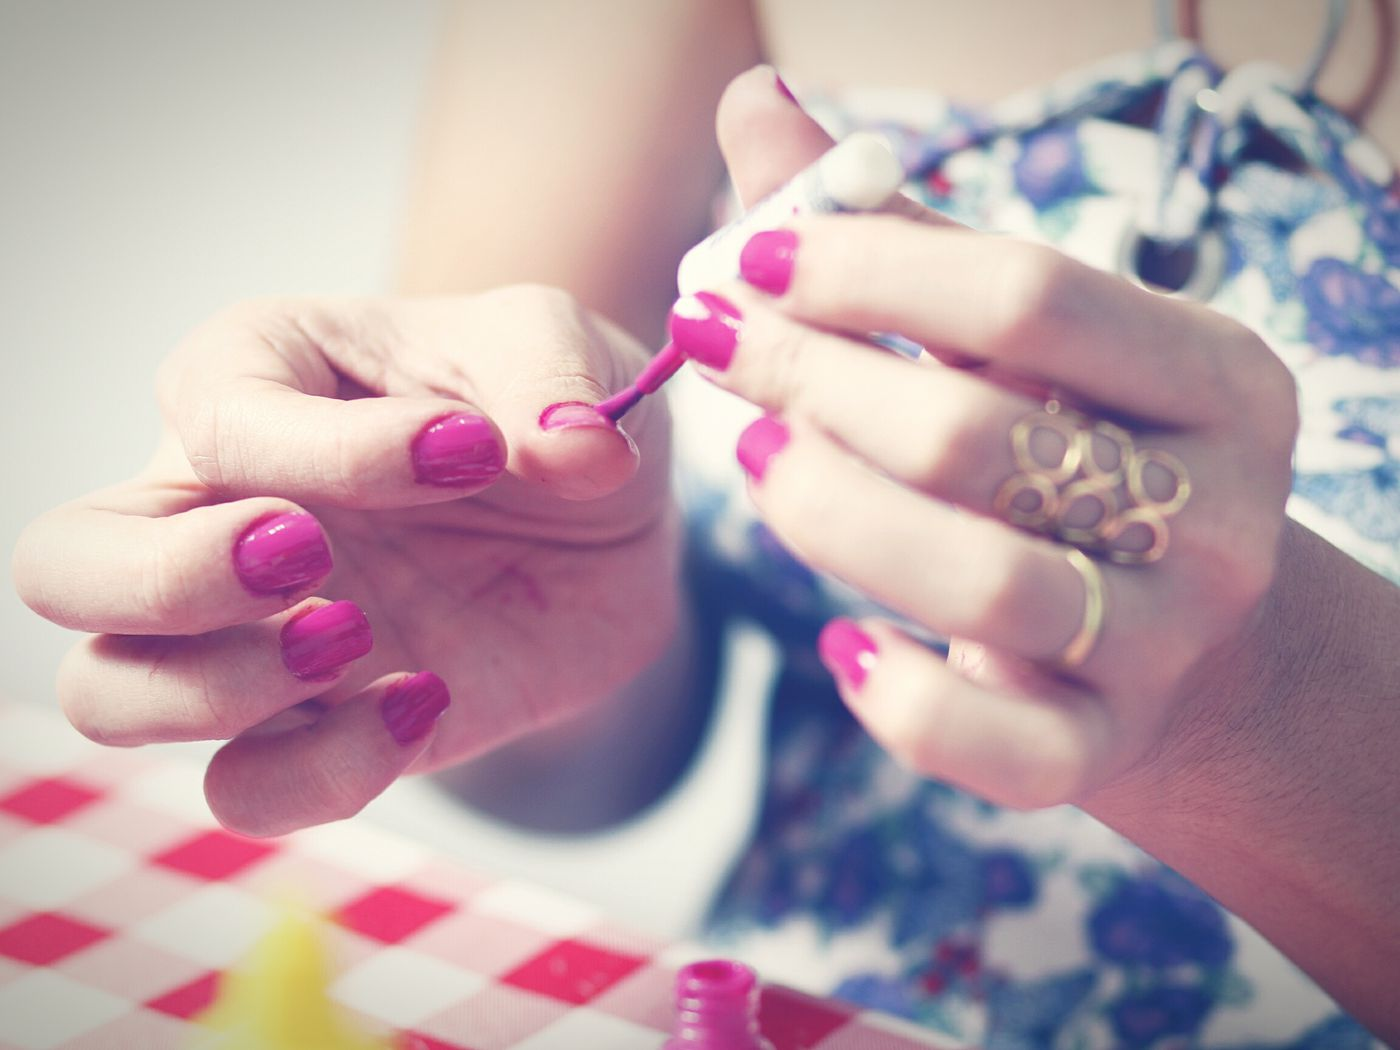 Nail polish, Nail paint, Formaldehyde gas, Cancer, Heart disease, Nervous system, Brain, Health news, Lifestyle news, Offbeat news